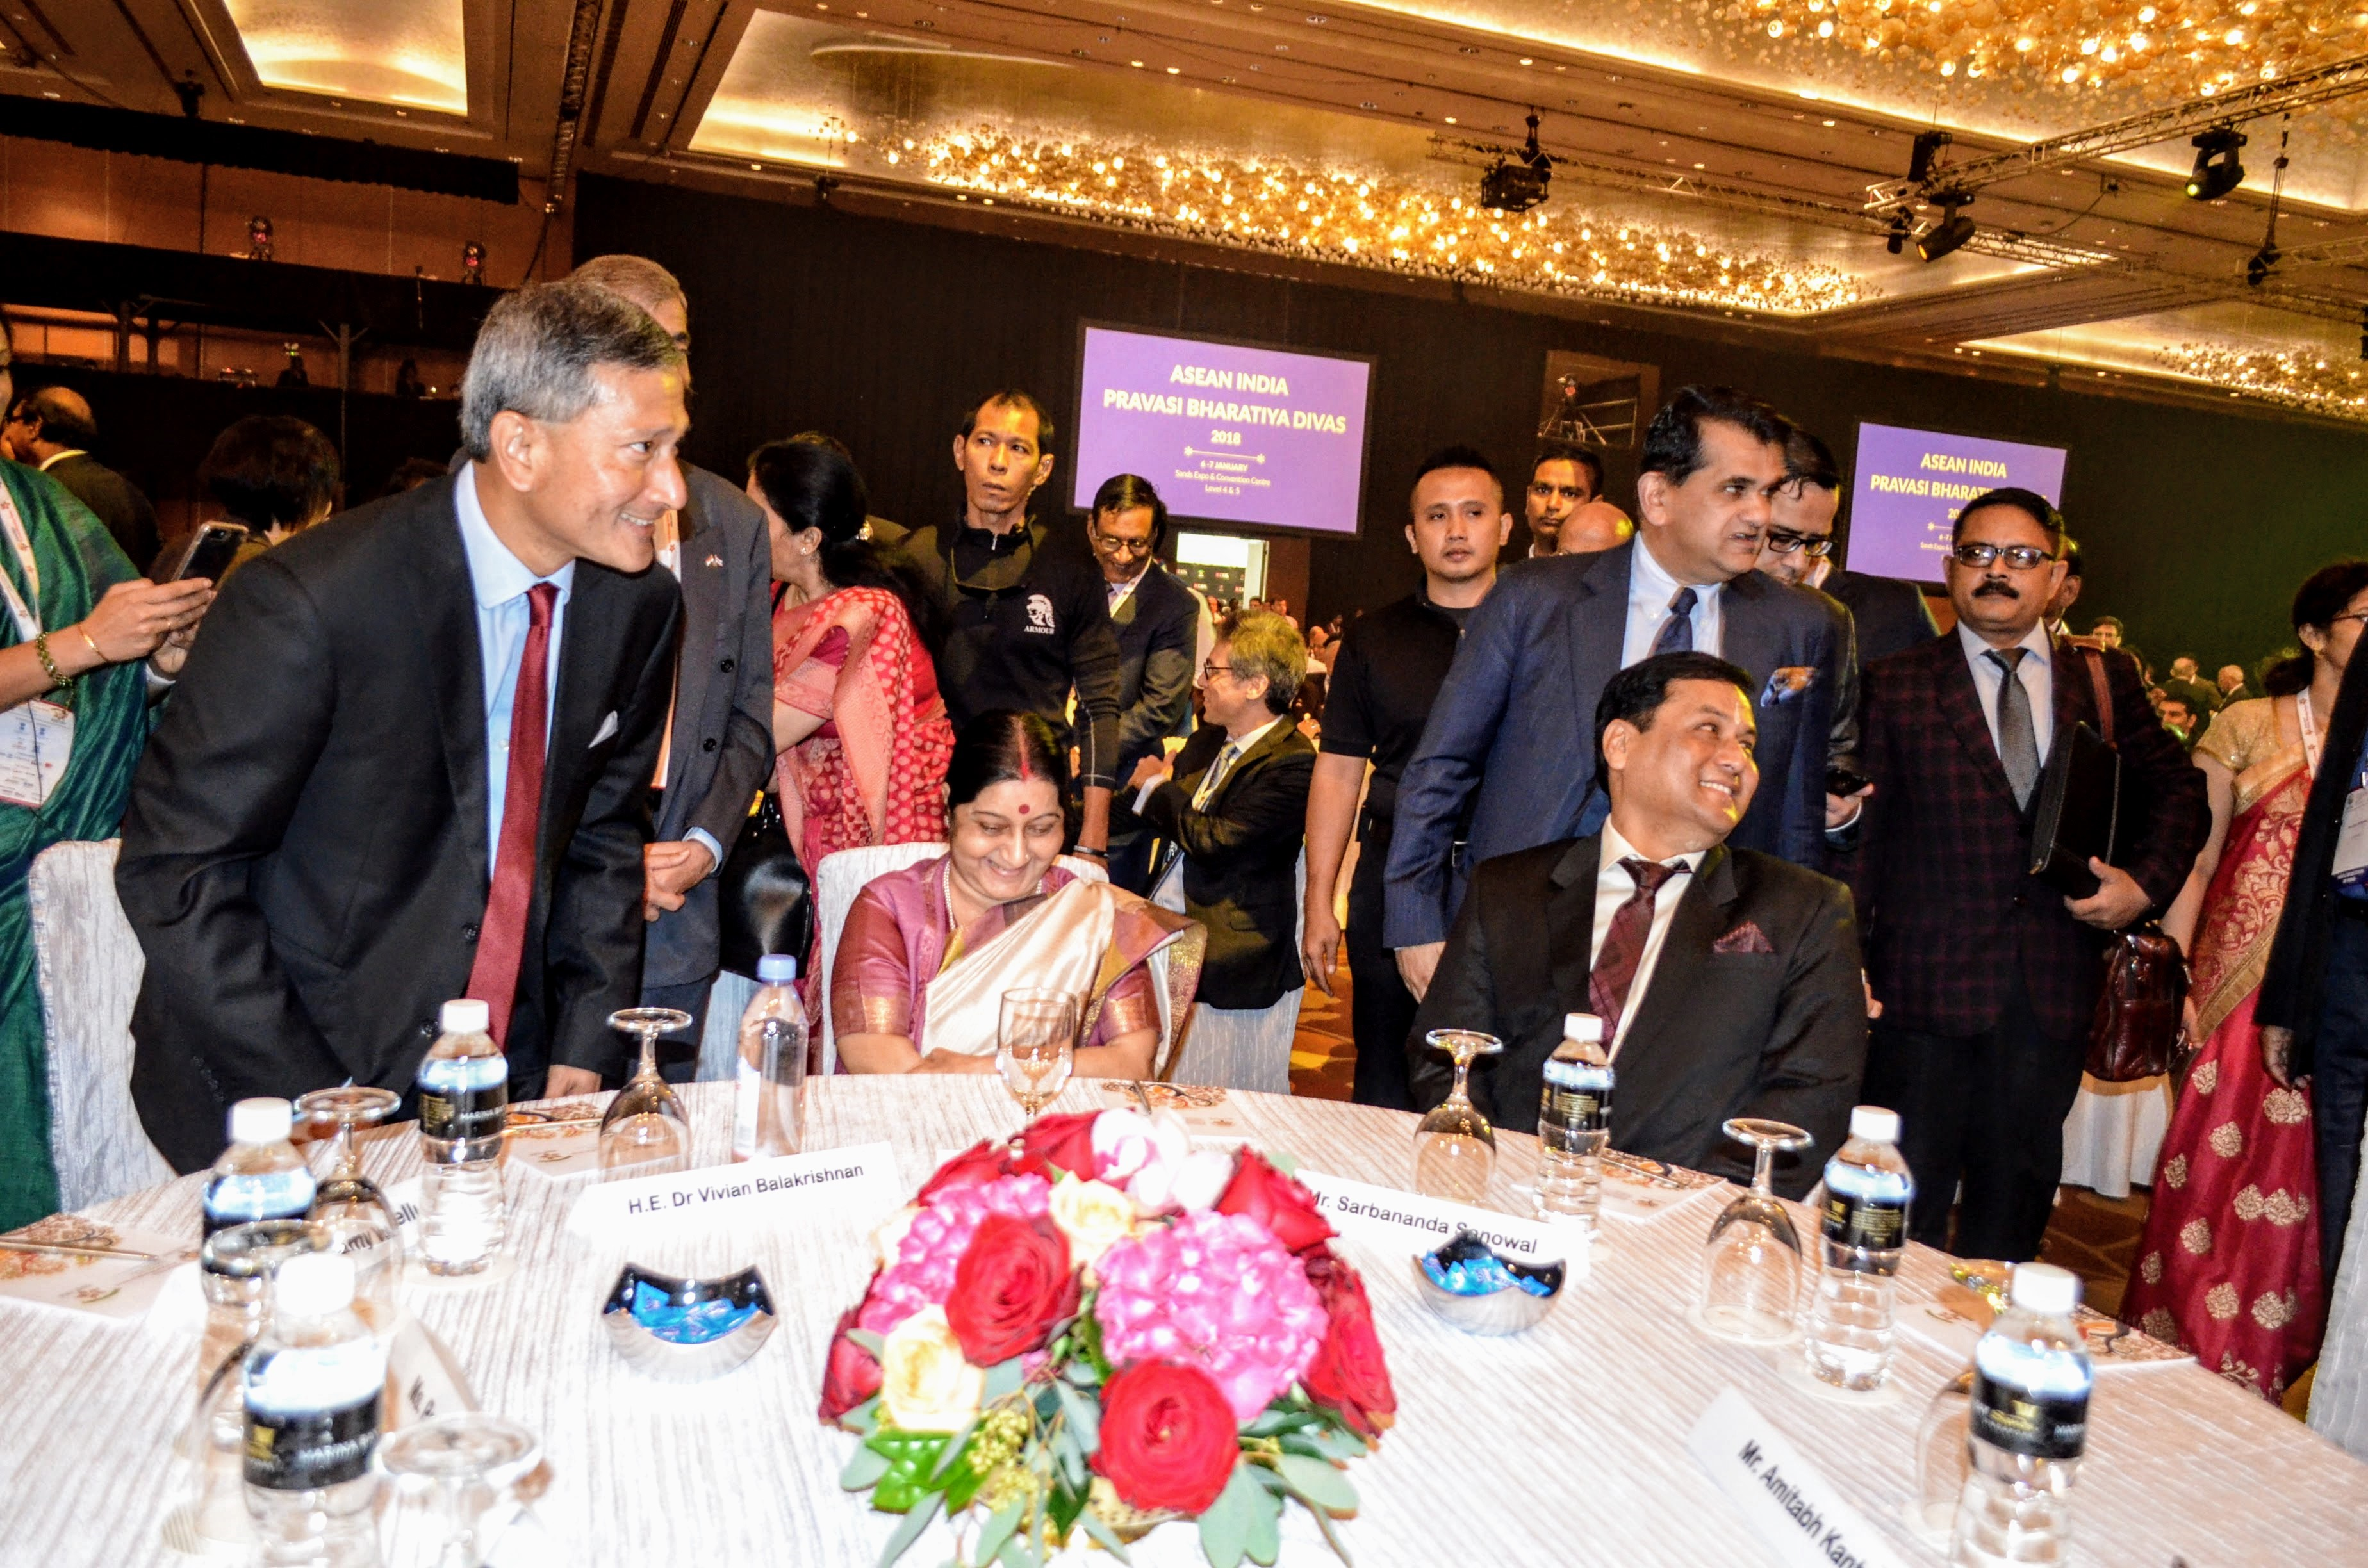 (From left) Singapore MFA Dr Vivian Balakrishnan, India EAM Sushma Swaraj and Chief Minister of Assam Sarbananda Sonowal share a laugh during the PBD plenary session in the main ballroom at Marina Bay Sands.